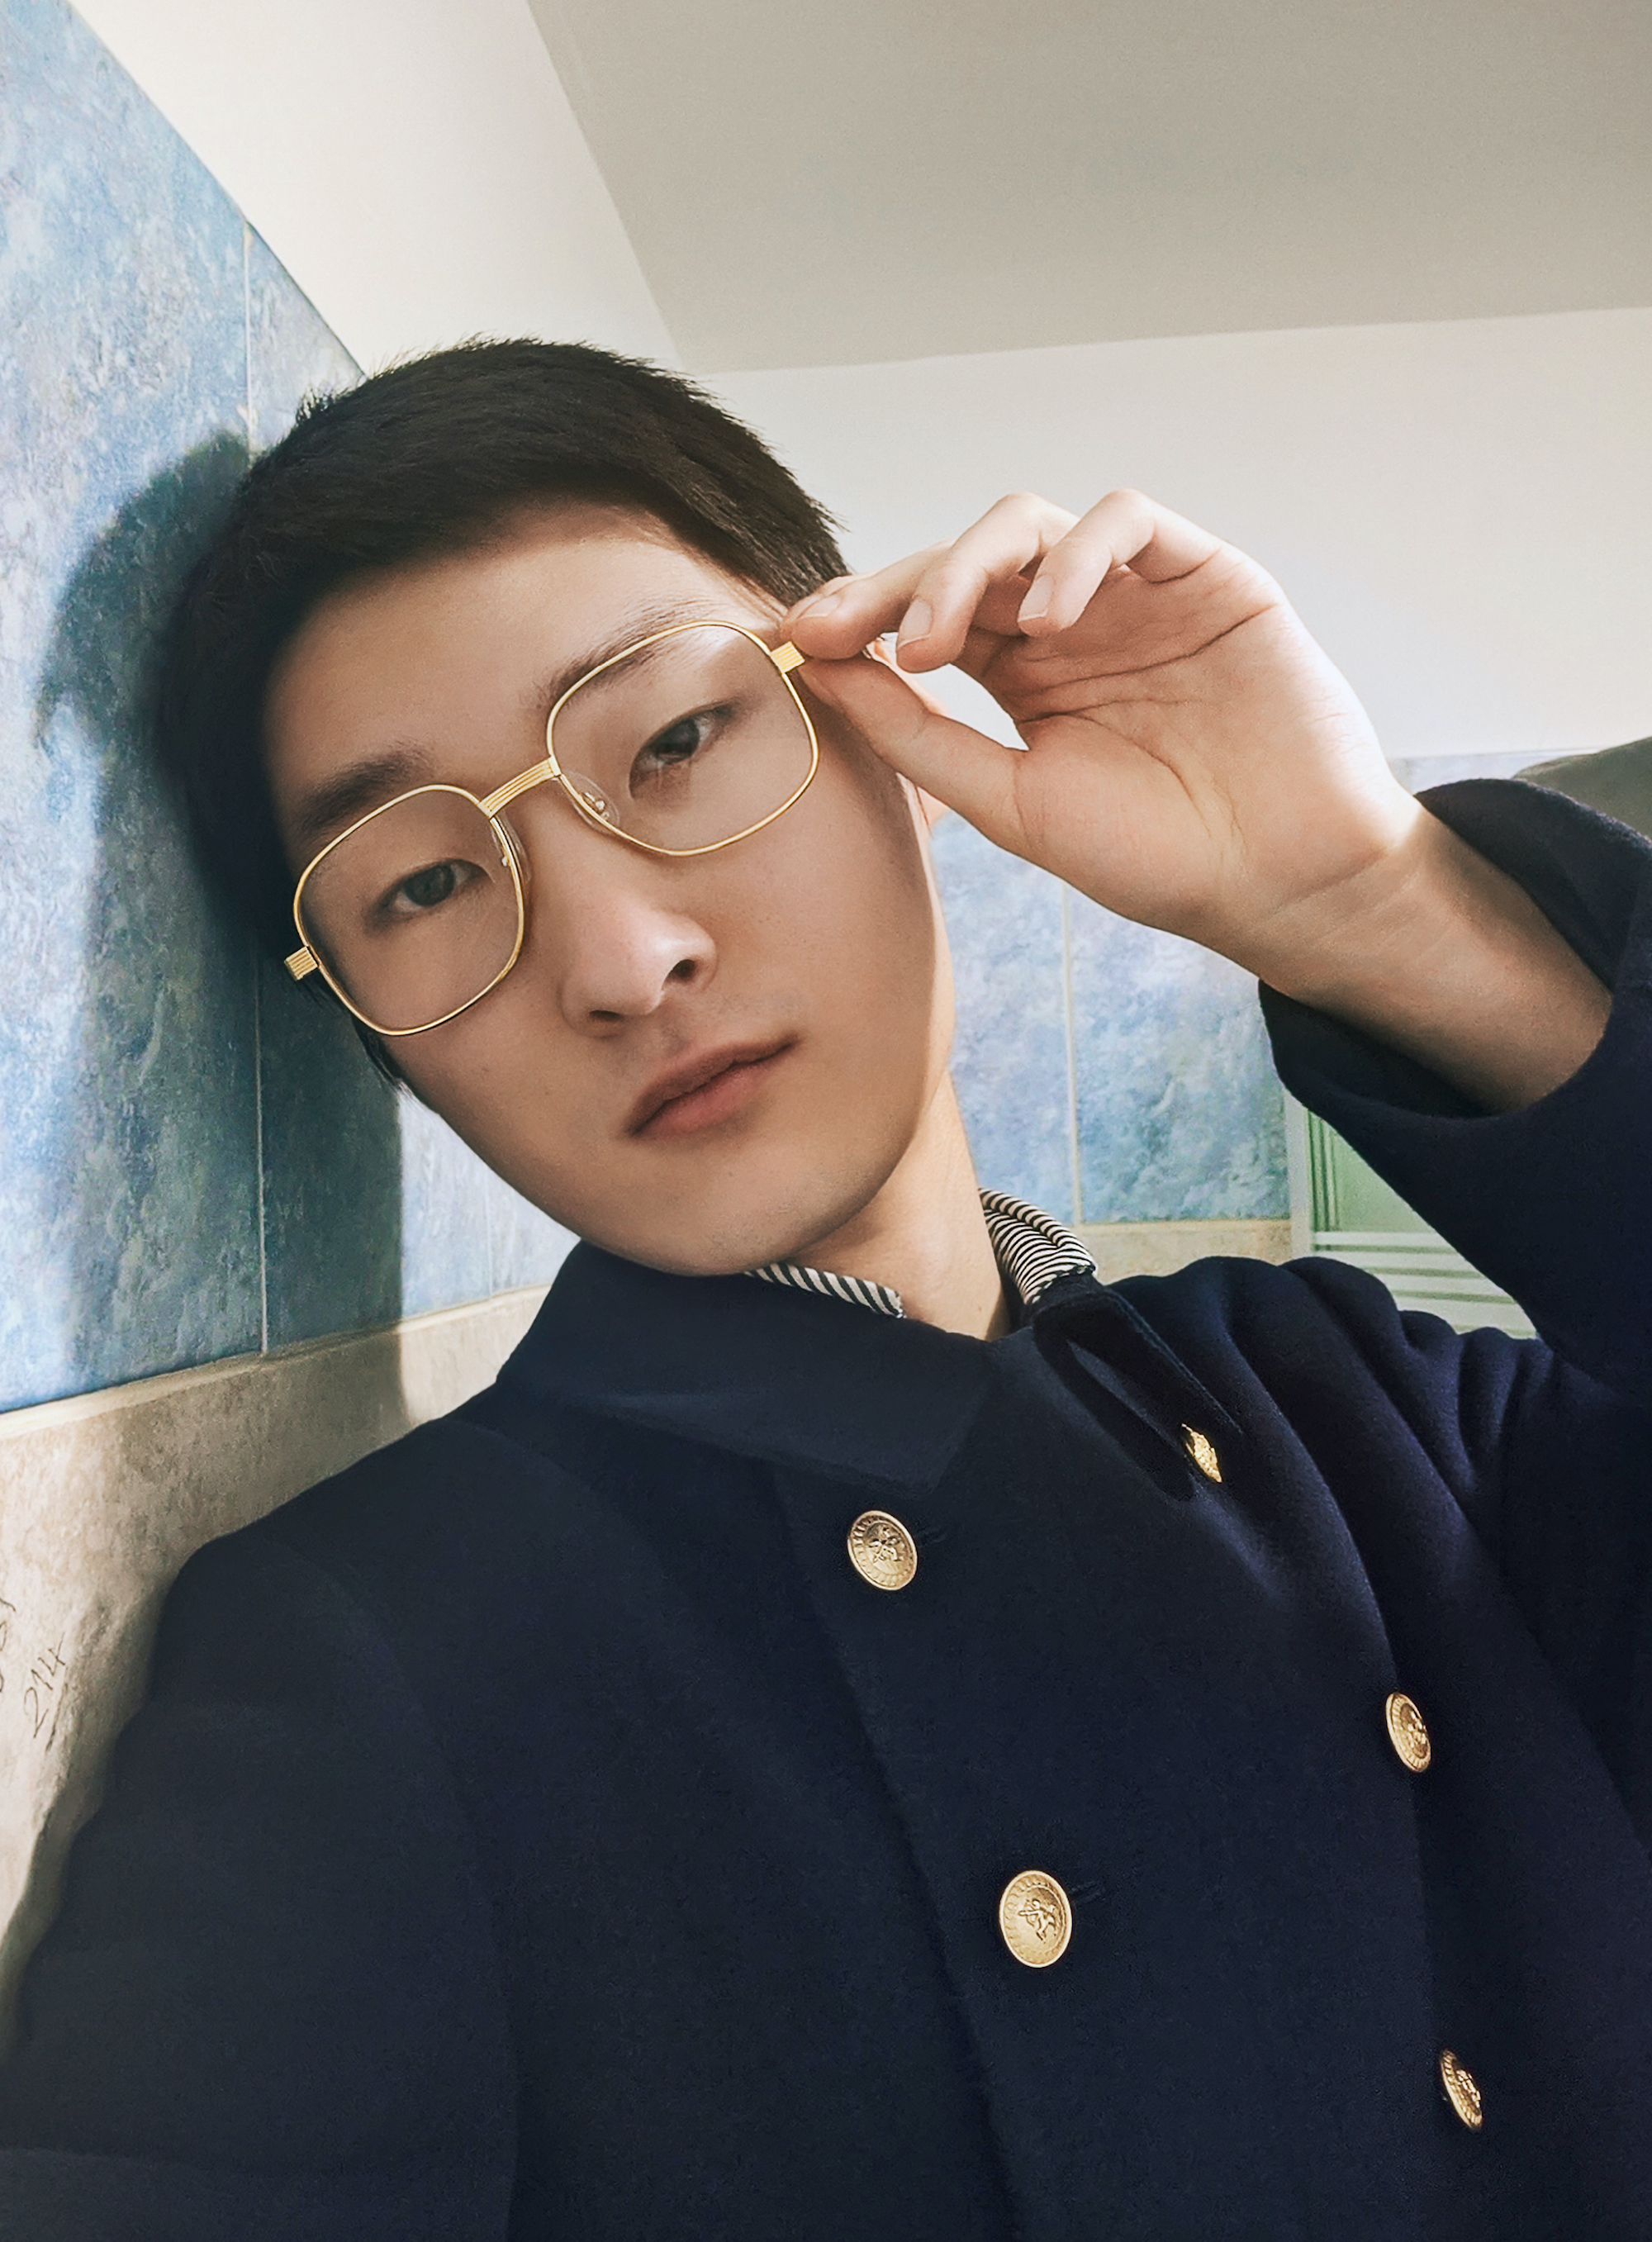 Gucci AW20 campaign model with glasses